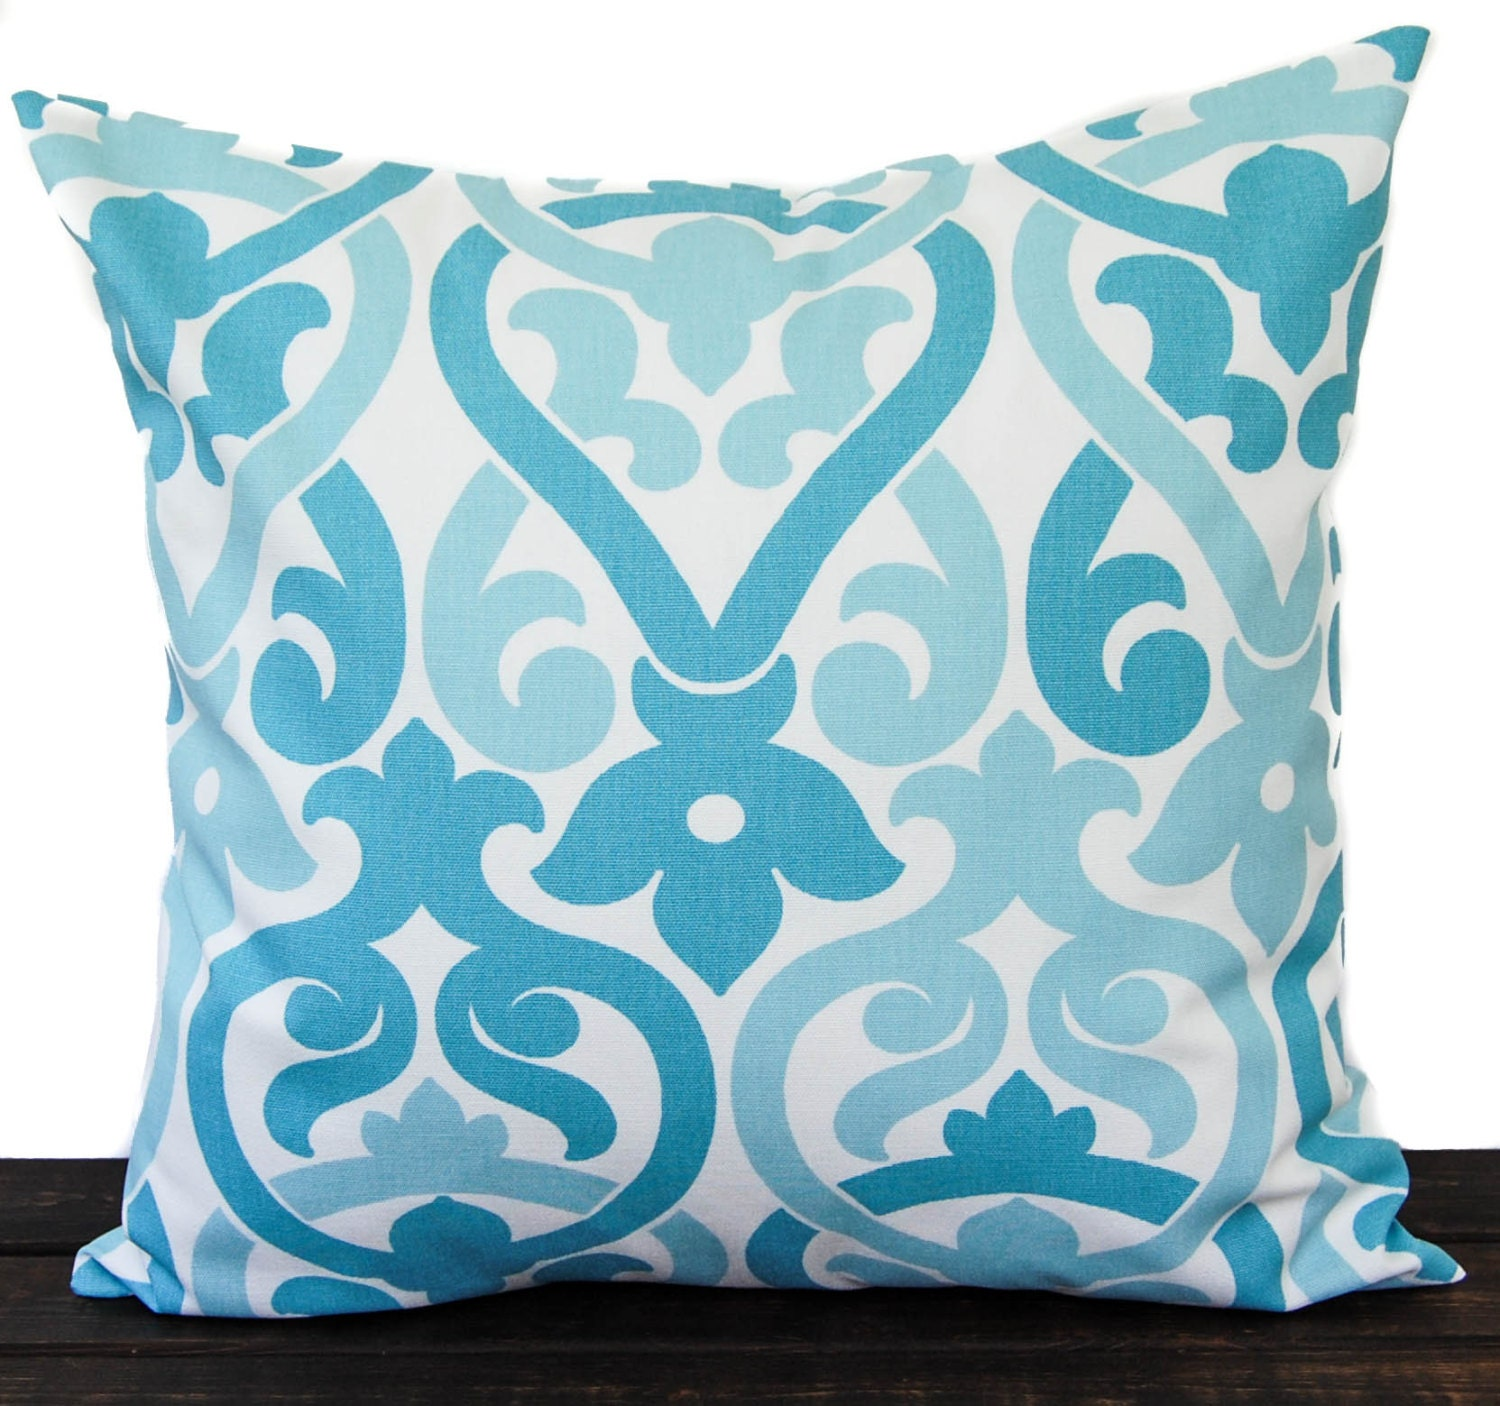 Coastal Decorative Pillow Covers : Throw pillow cover Coastal Blue and white cushion cover